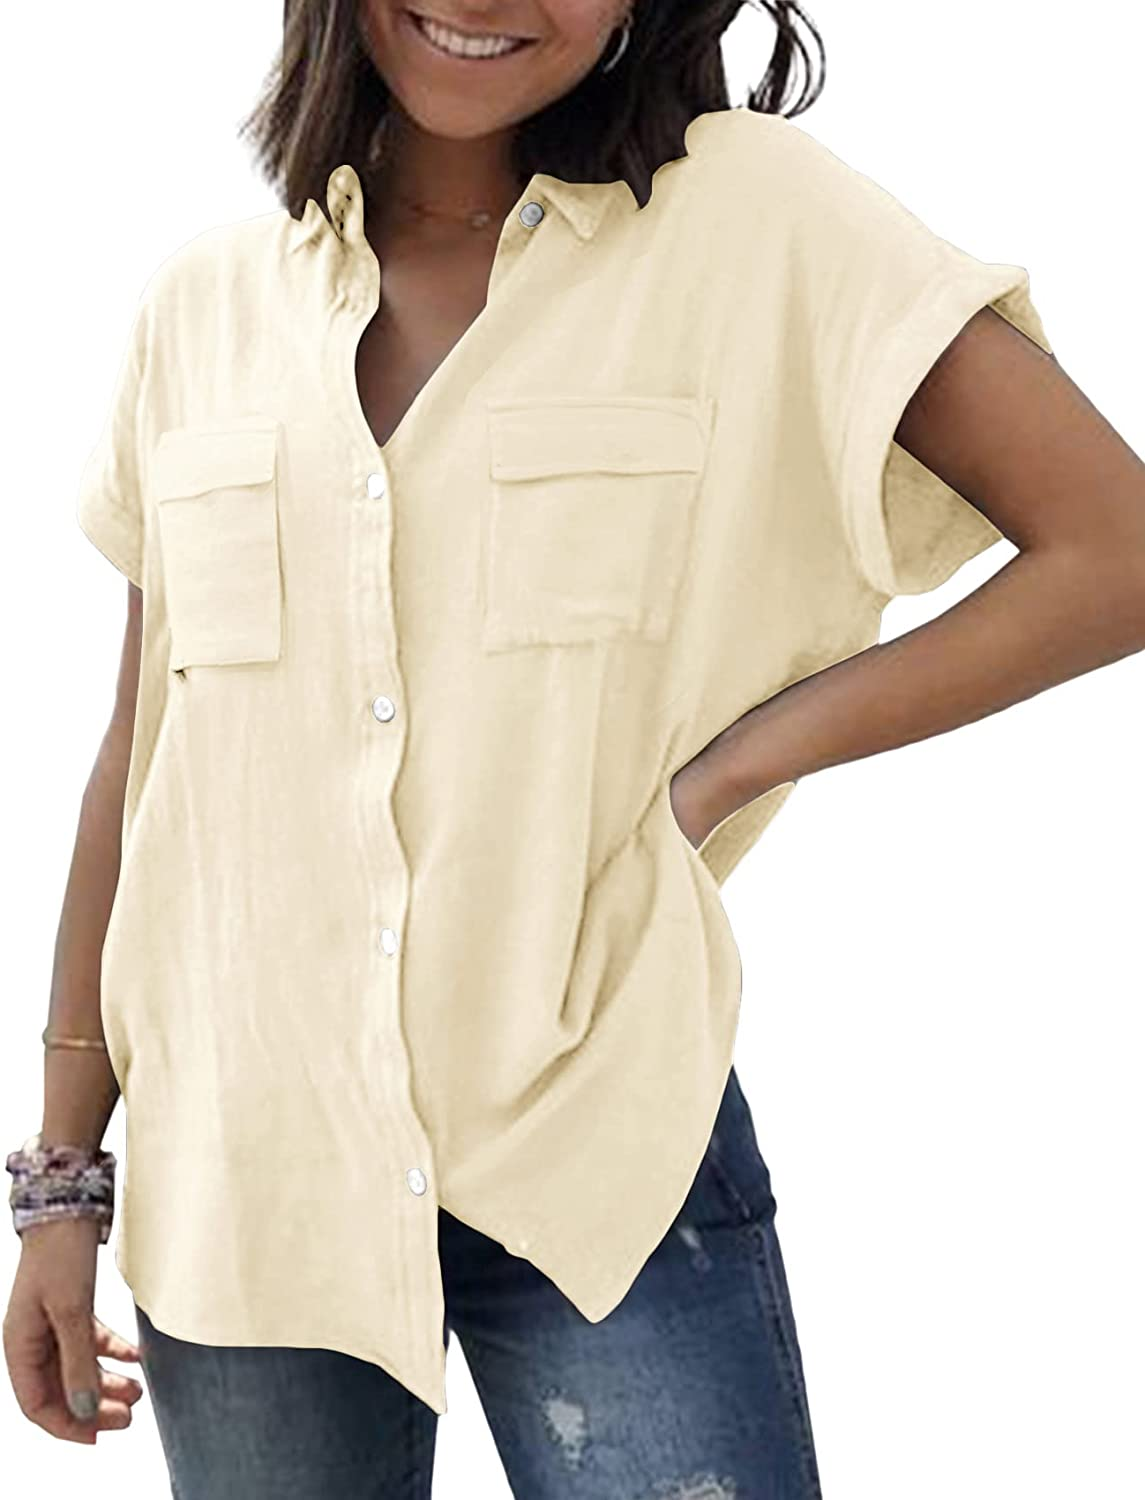 Womens V Neck Button Down Shirt Cuffed Sleeve Summer Beach Casual Tops Loose Fit Blouse with Two Side Pockets